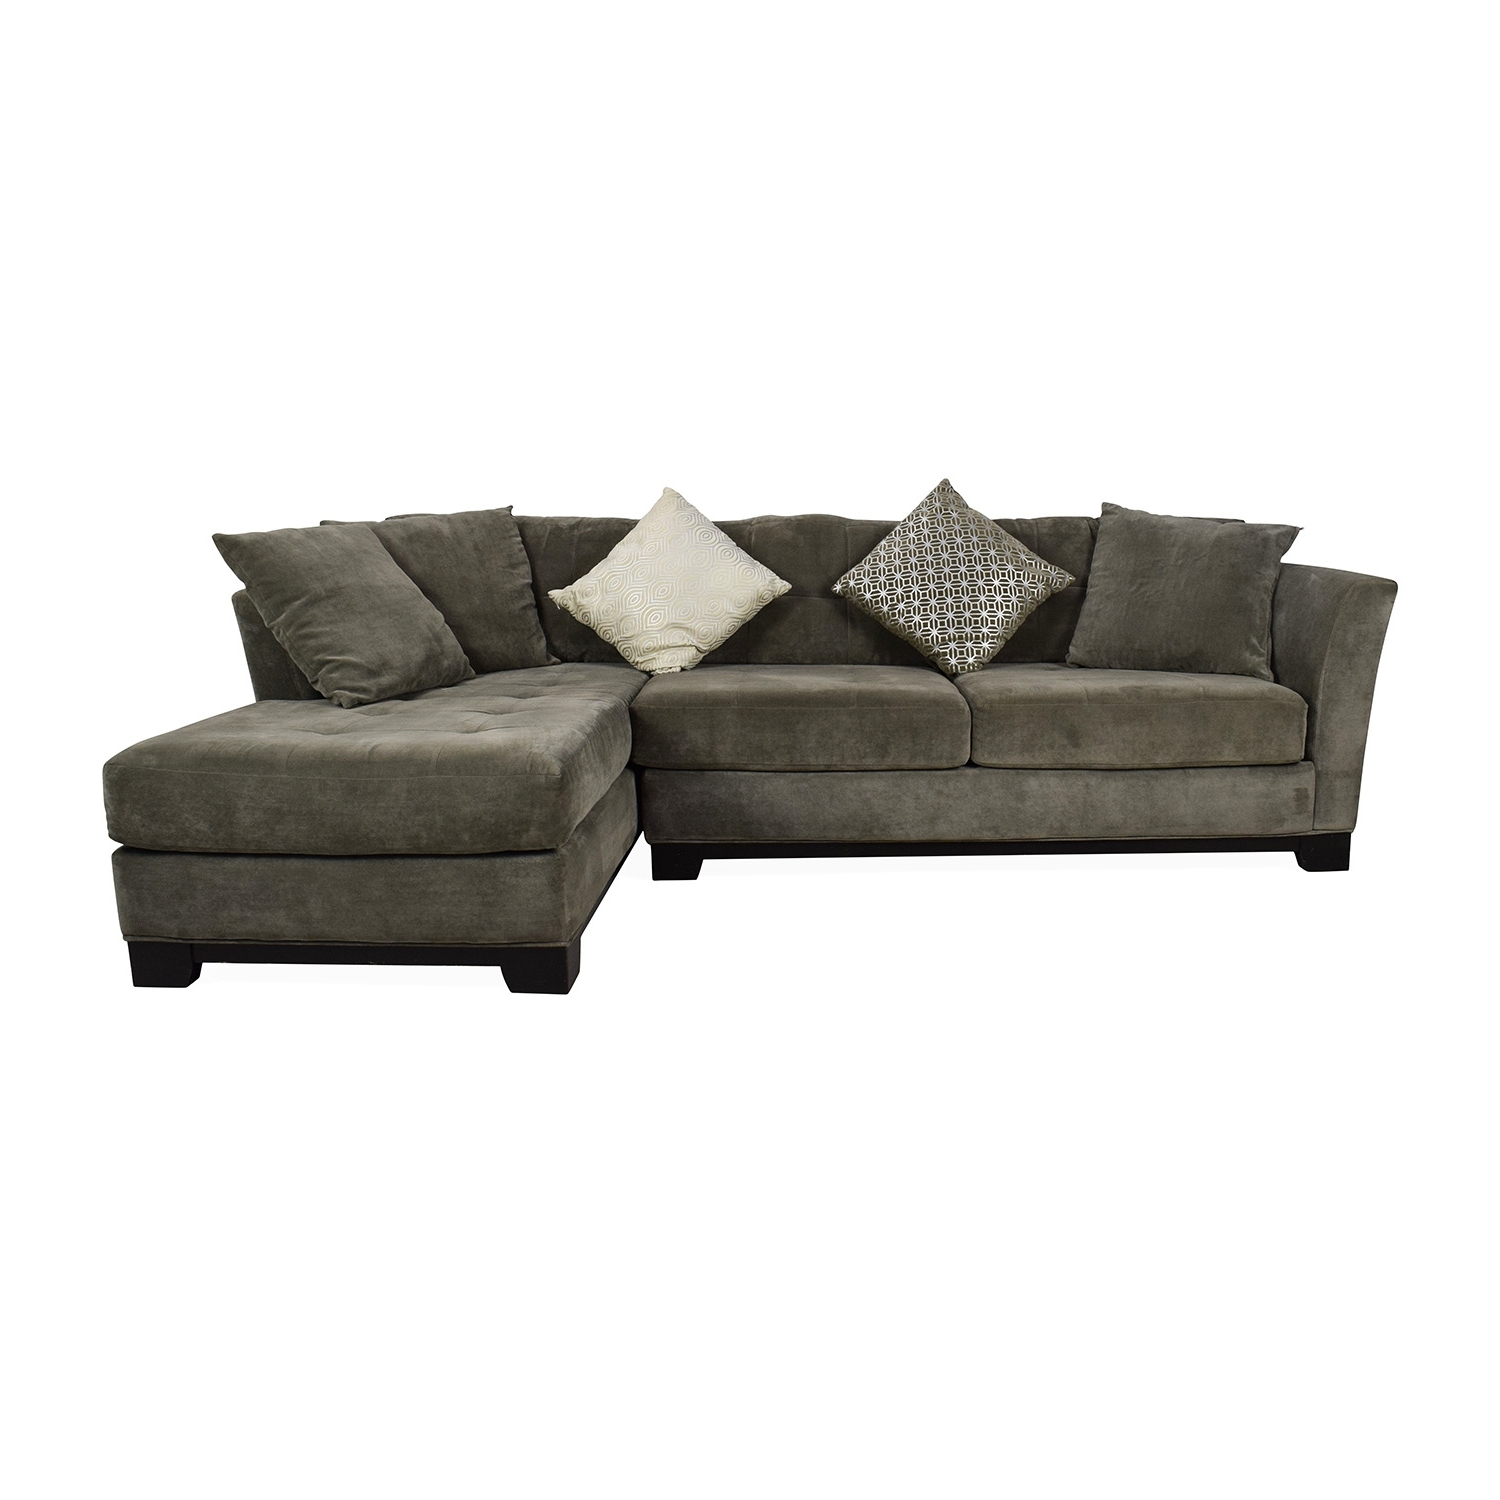 [%50% Off – Macy's Macy's Gray Sectional Couch With Chaise / Sofas Pertaining To Well Known Macys Sectional Sofas|Macys Sectional Sofas Regarding Well Known 50% Off – Macy's Macy's Gray Sectional Couch With Chaise / Sofas|2018 Macys Sectional Sofas Inside 50% Off – Macy's Macy's Gray Sectional Couch With Chaise / Sofas|Popular 50% Off – Macy's Macy's Gray Sectional Couch With Chaise / Sofas Regarding Macys Sectional Sofas%] (View 1 of 20)